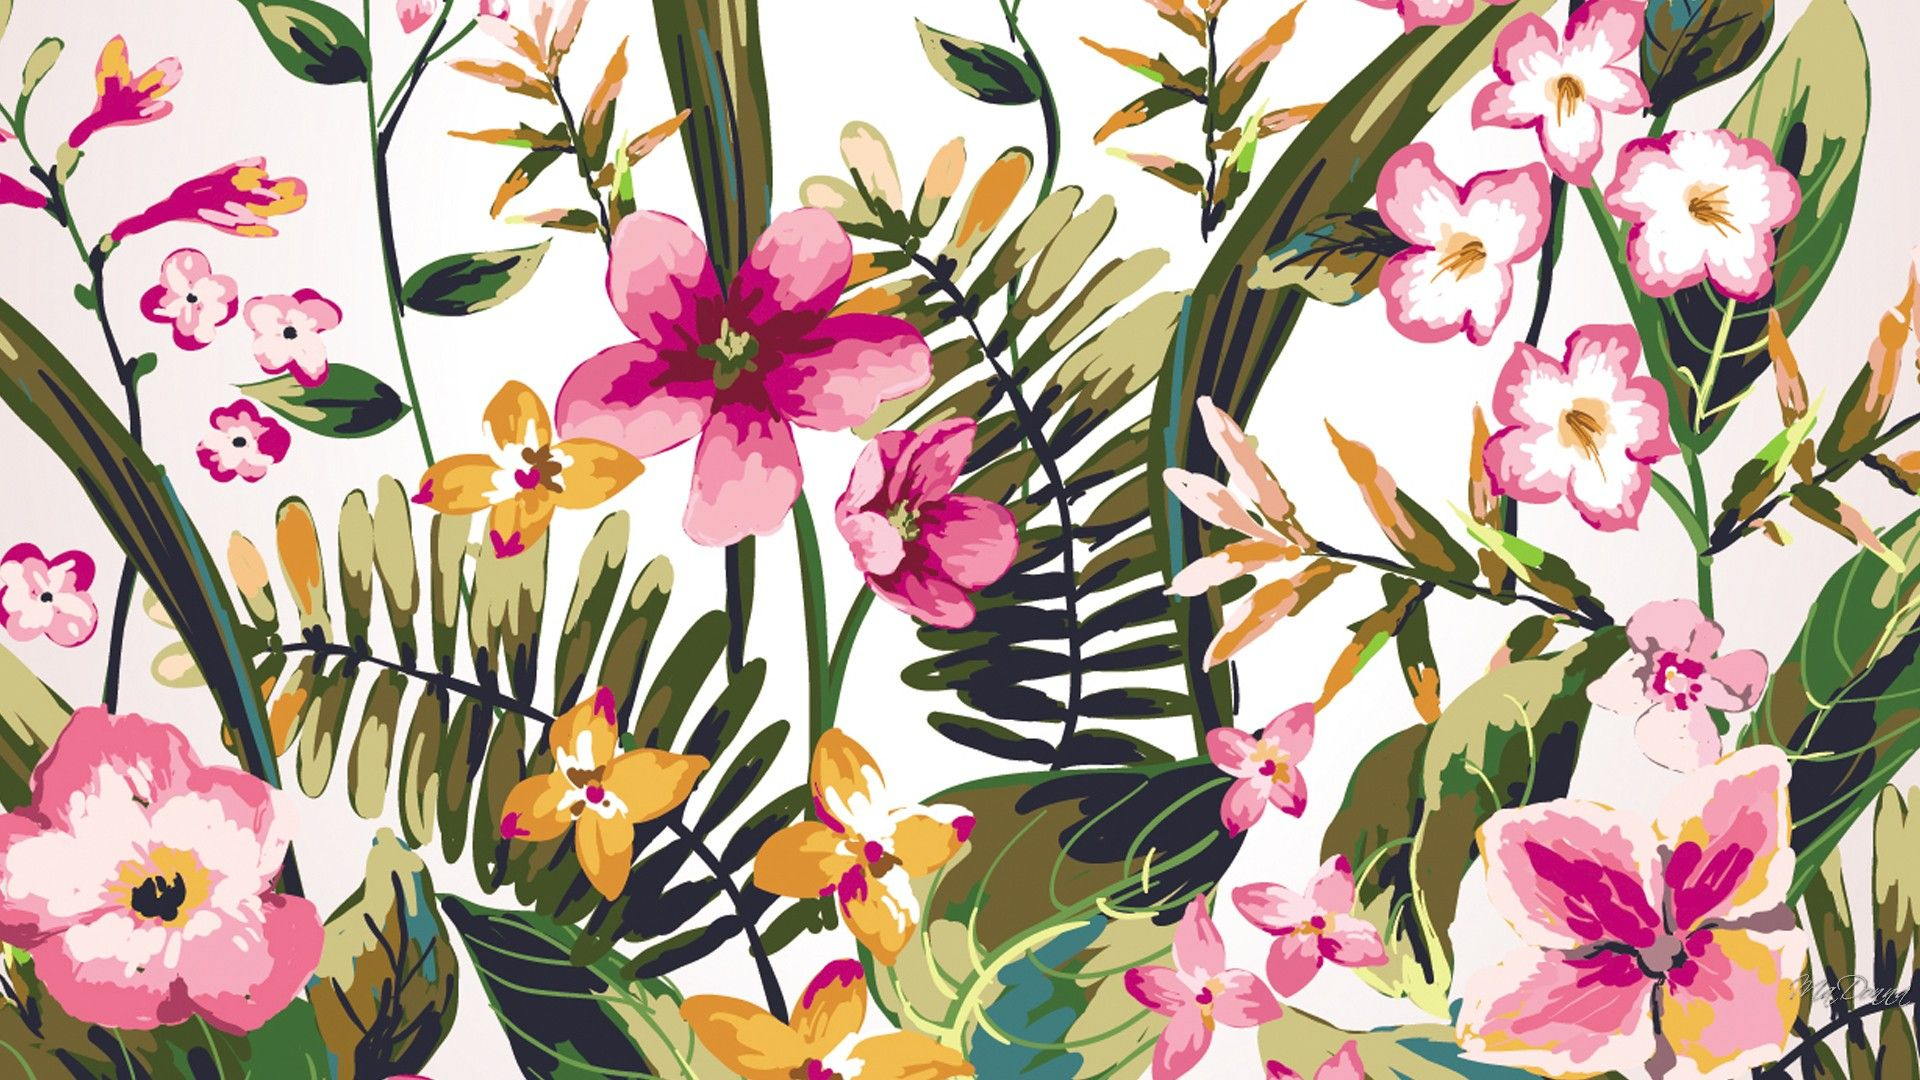 flower painting watercolor wallpaper - photo #30